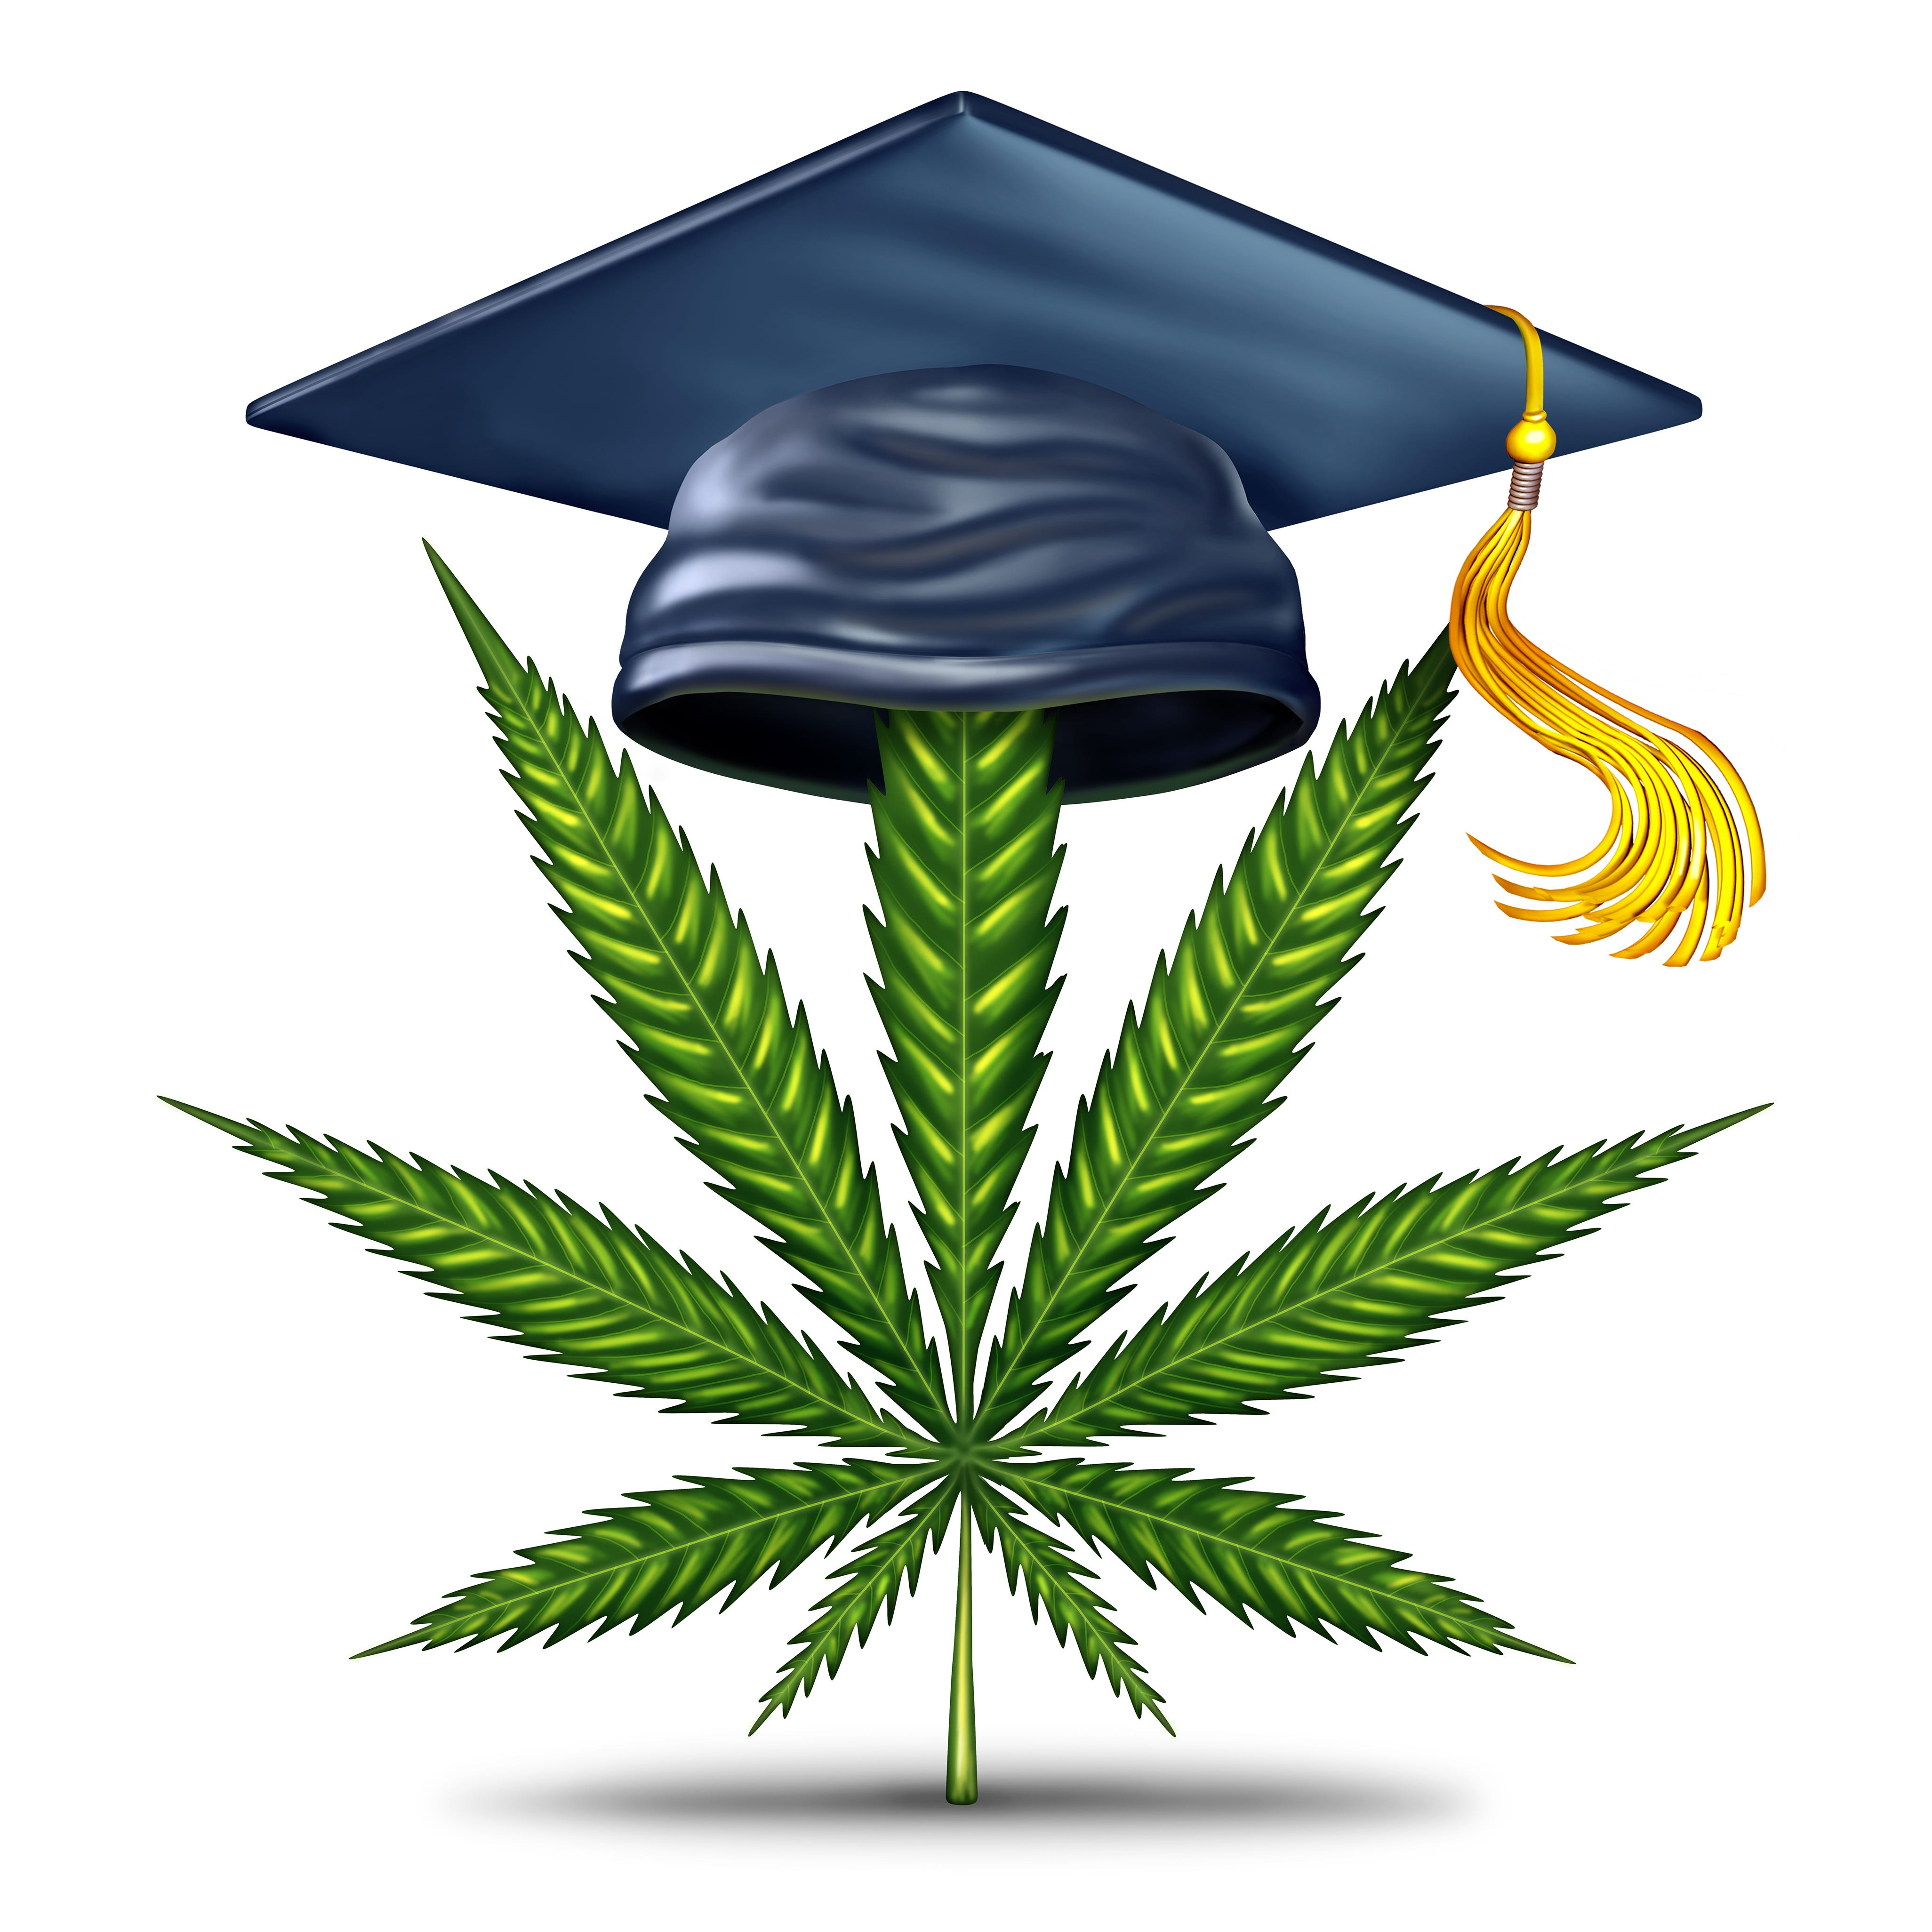 Even if NJ gets legal weed, don't expect to get high (legally) on college campuses